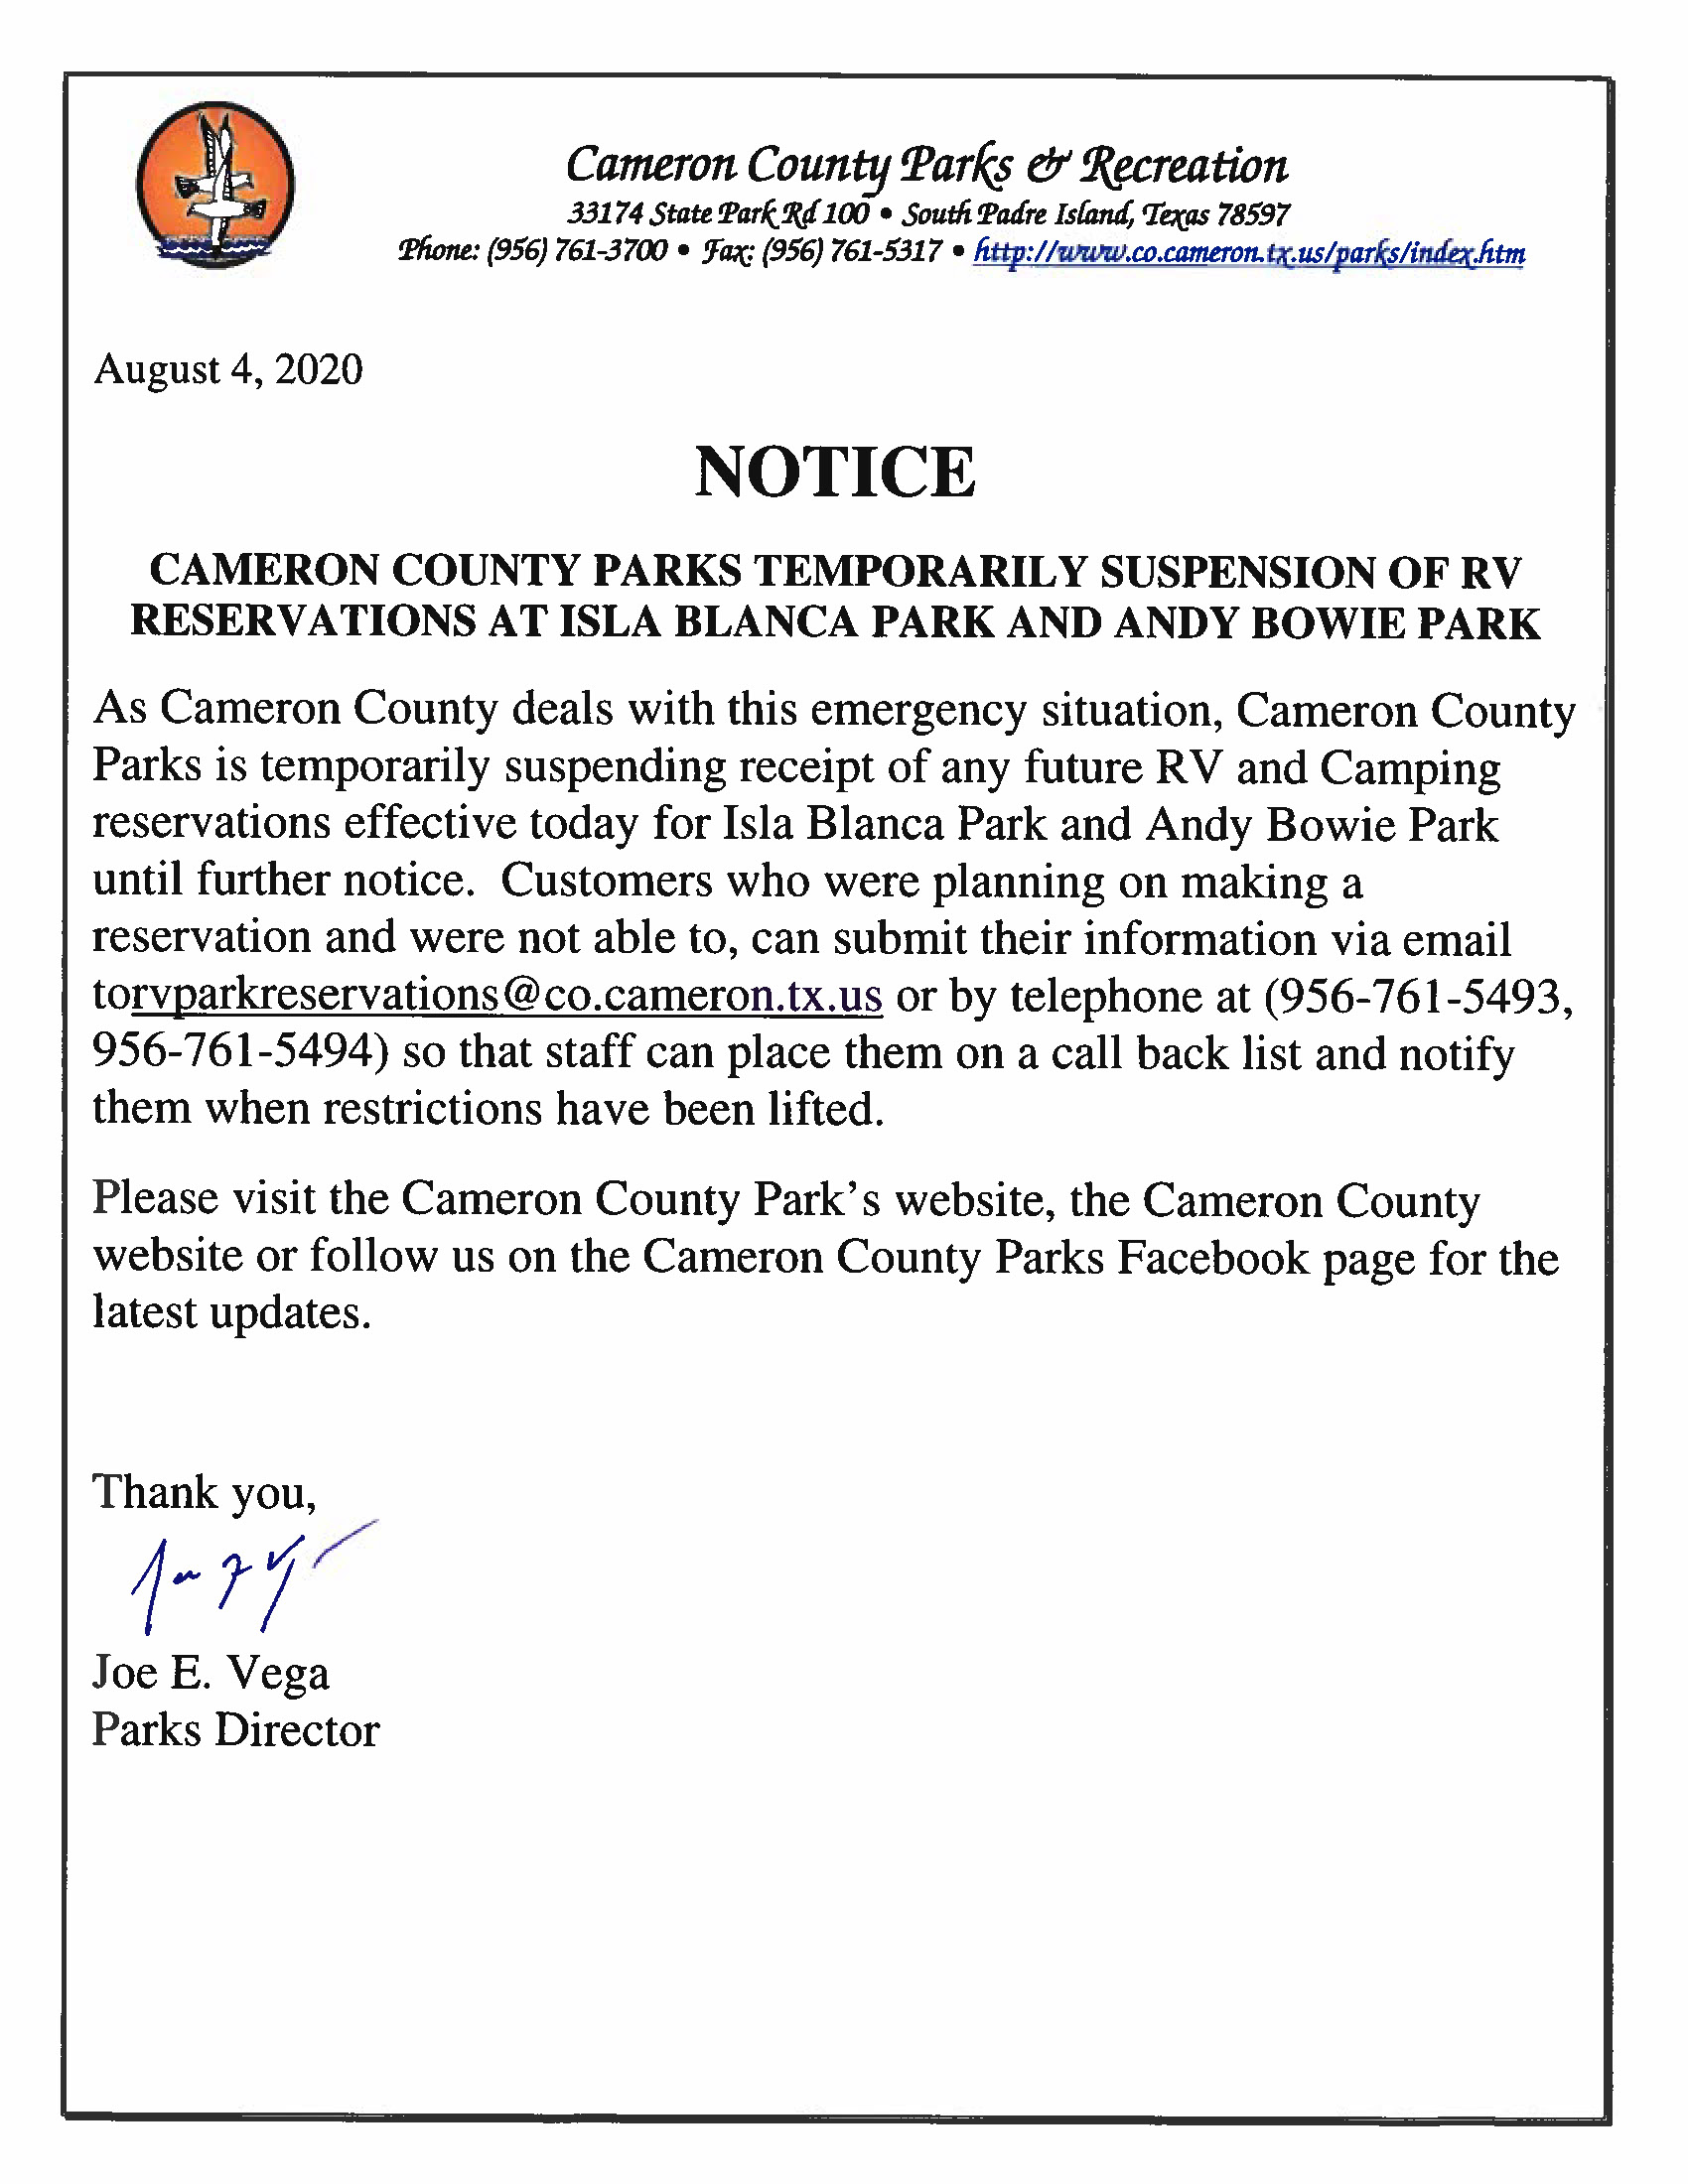 Temporarily Suspension Of RV Sites Isla Blanca Park And Andy Bowie Park 8 4 20